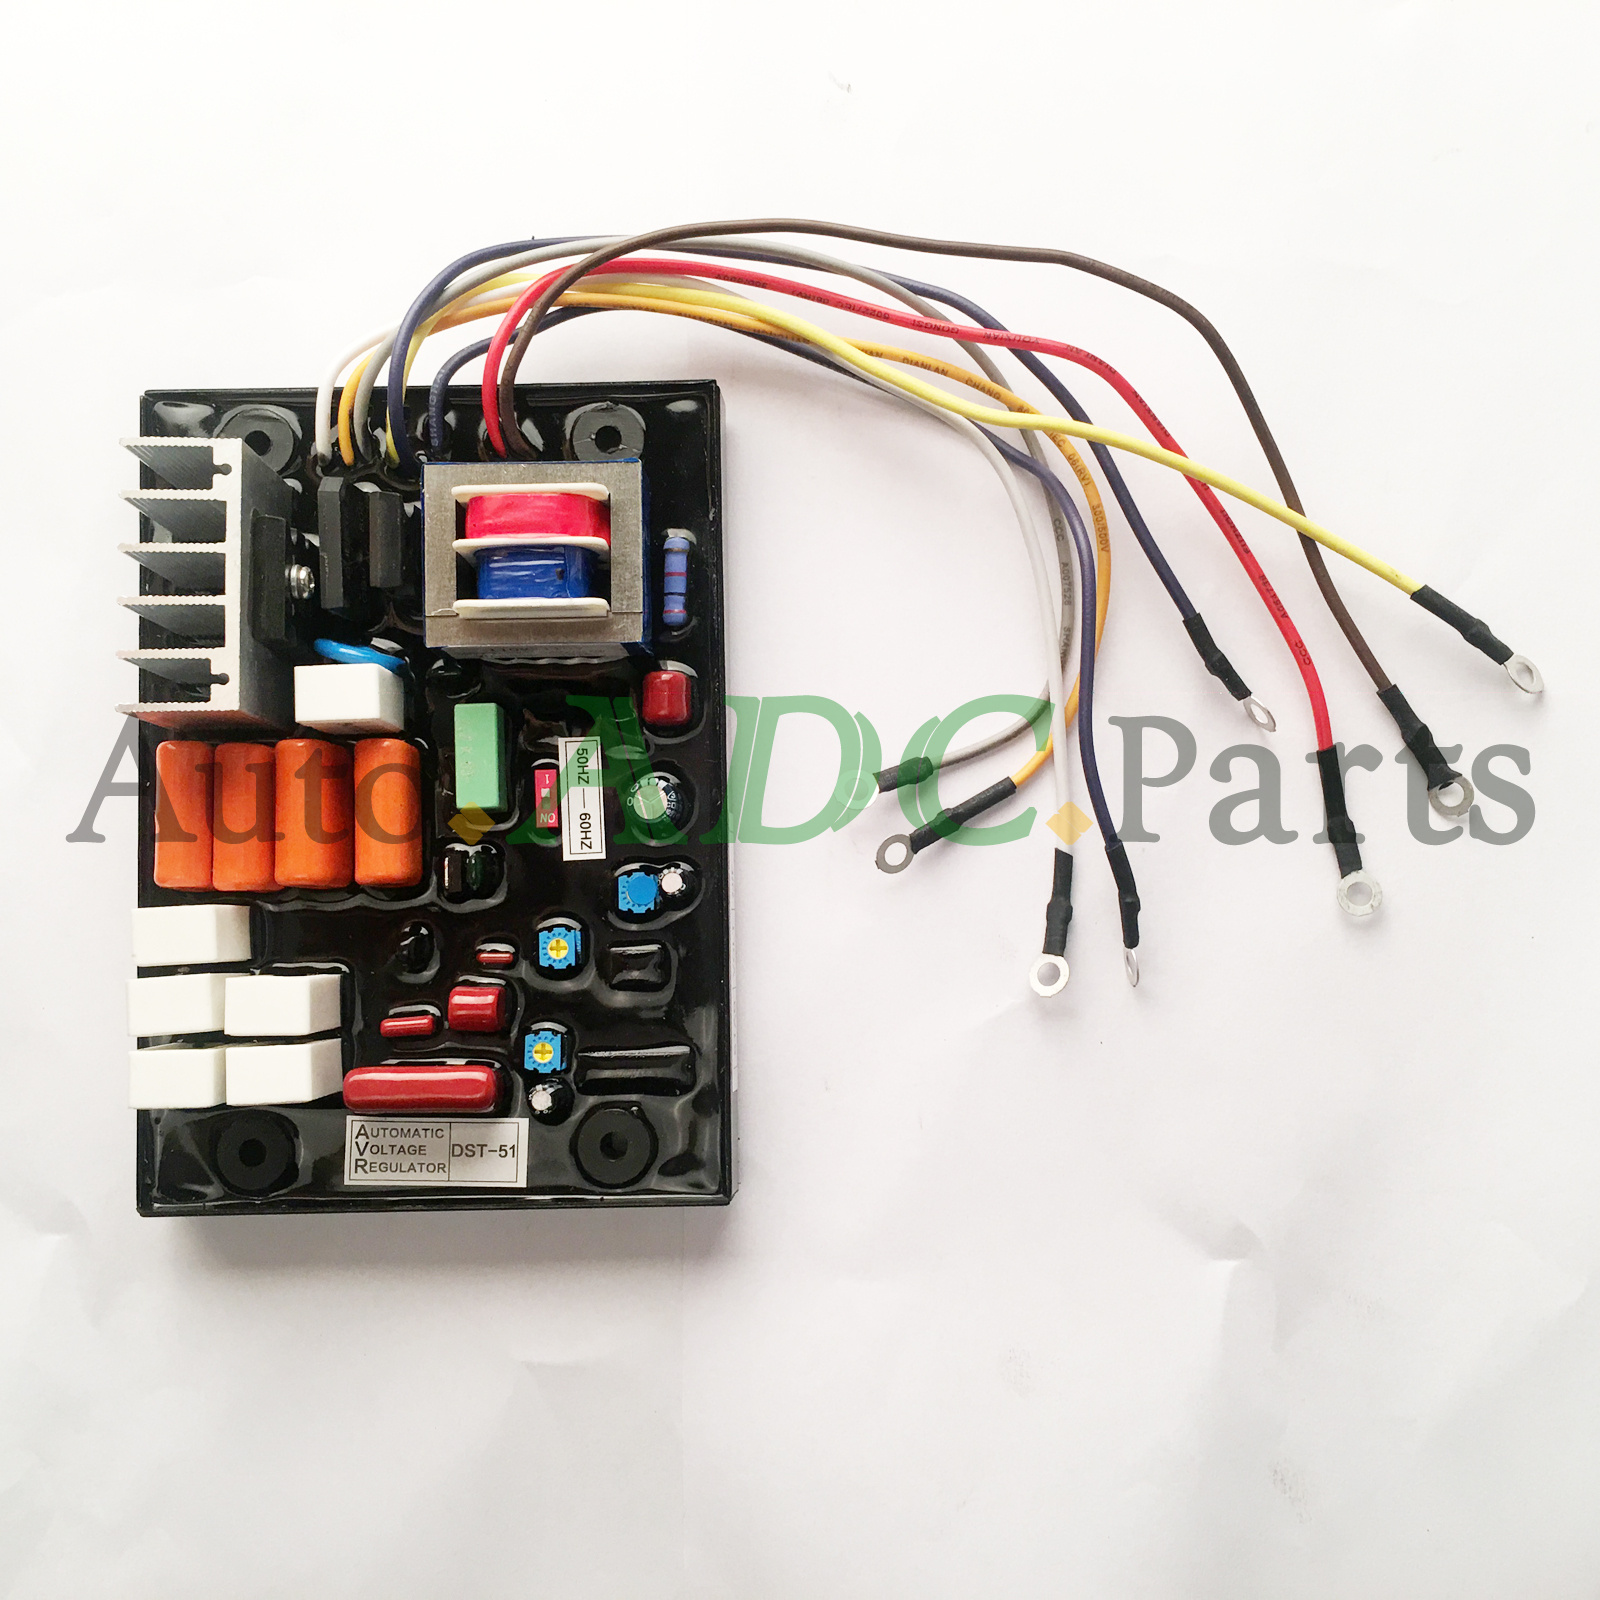 Details about DST-51-DFK AVR Voltage Regulator For Yamaha EDL13000TE on